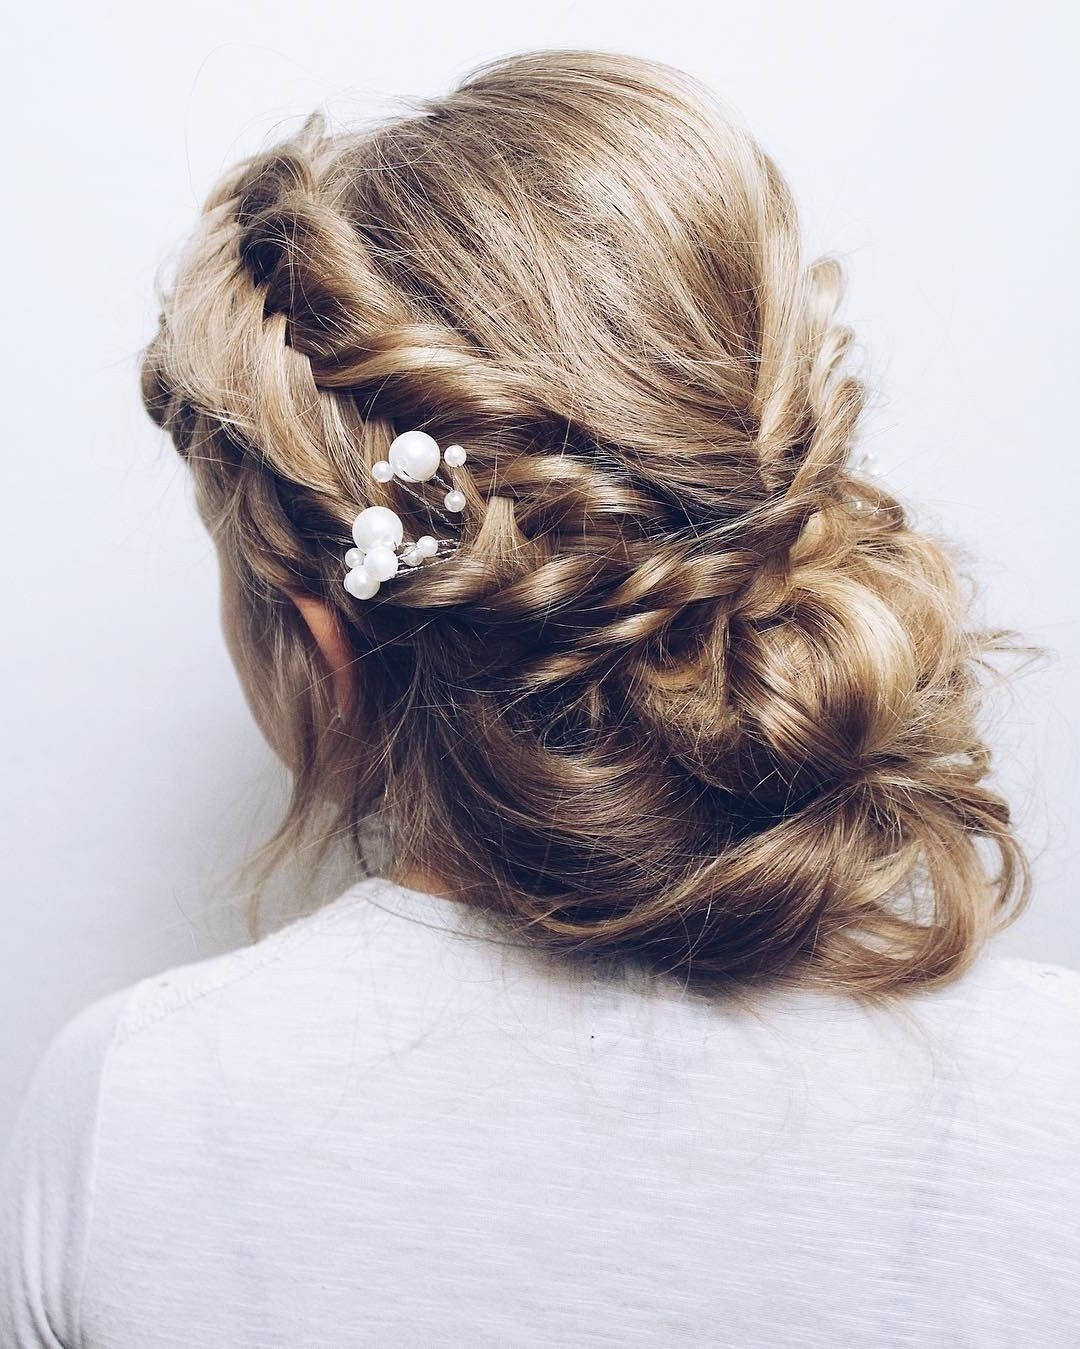 Popular Blooming French Braid Prom Hairstyles Intended For 61 Wedding Ready Braids In (View 14 of 20)